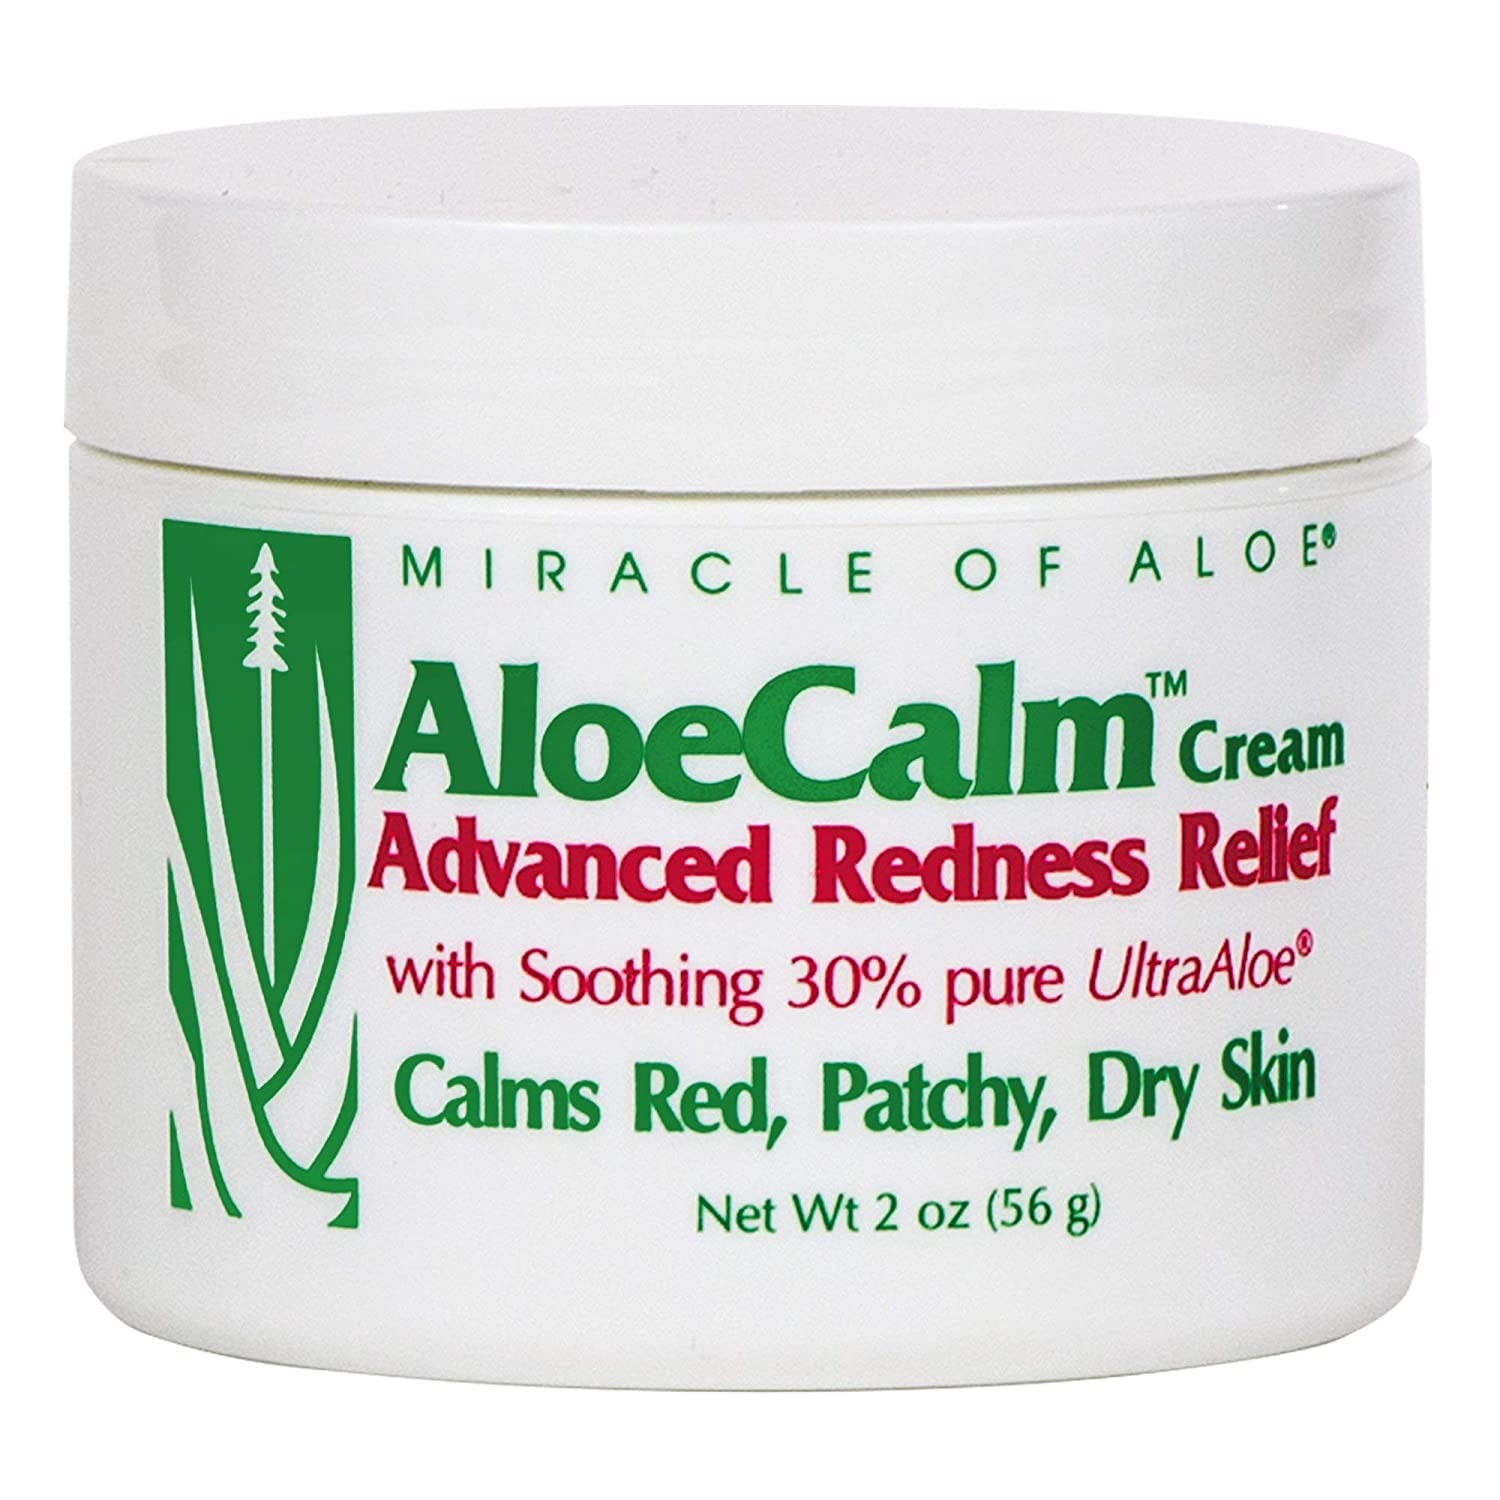 AloeCalm Advanced Redness Relief Cream 2 Ounce jar with 30% UltraAloe